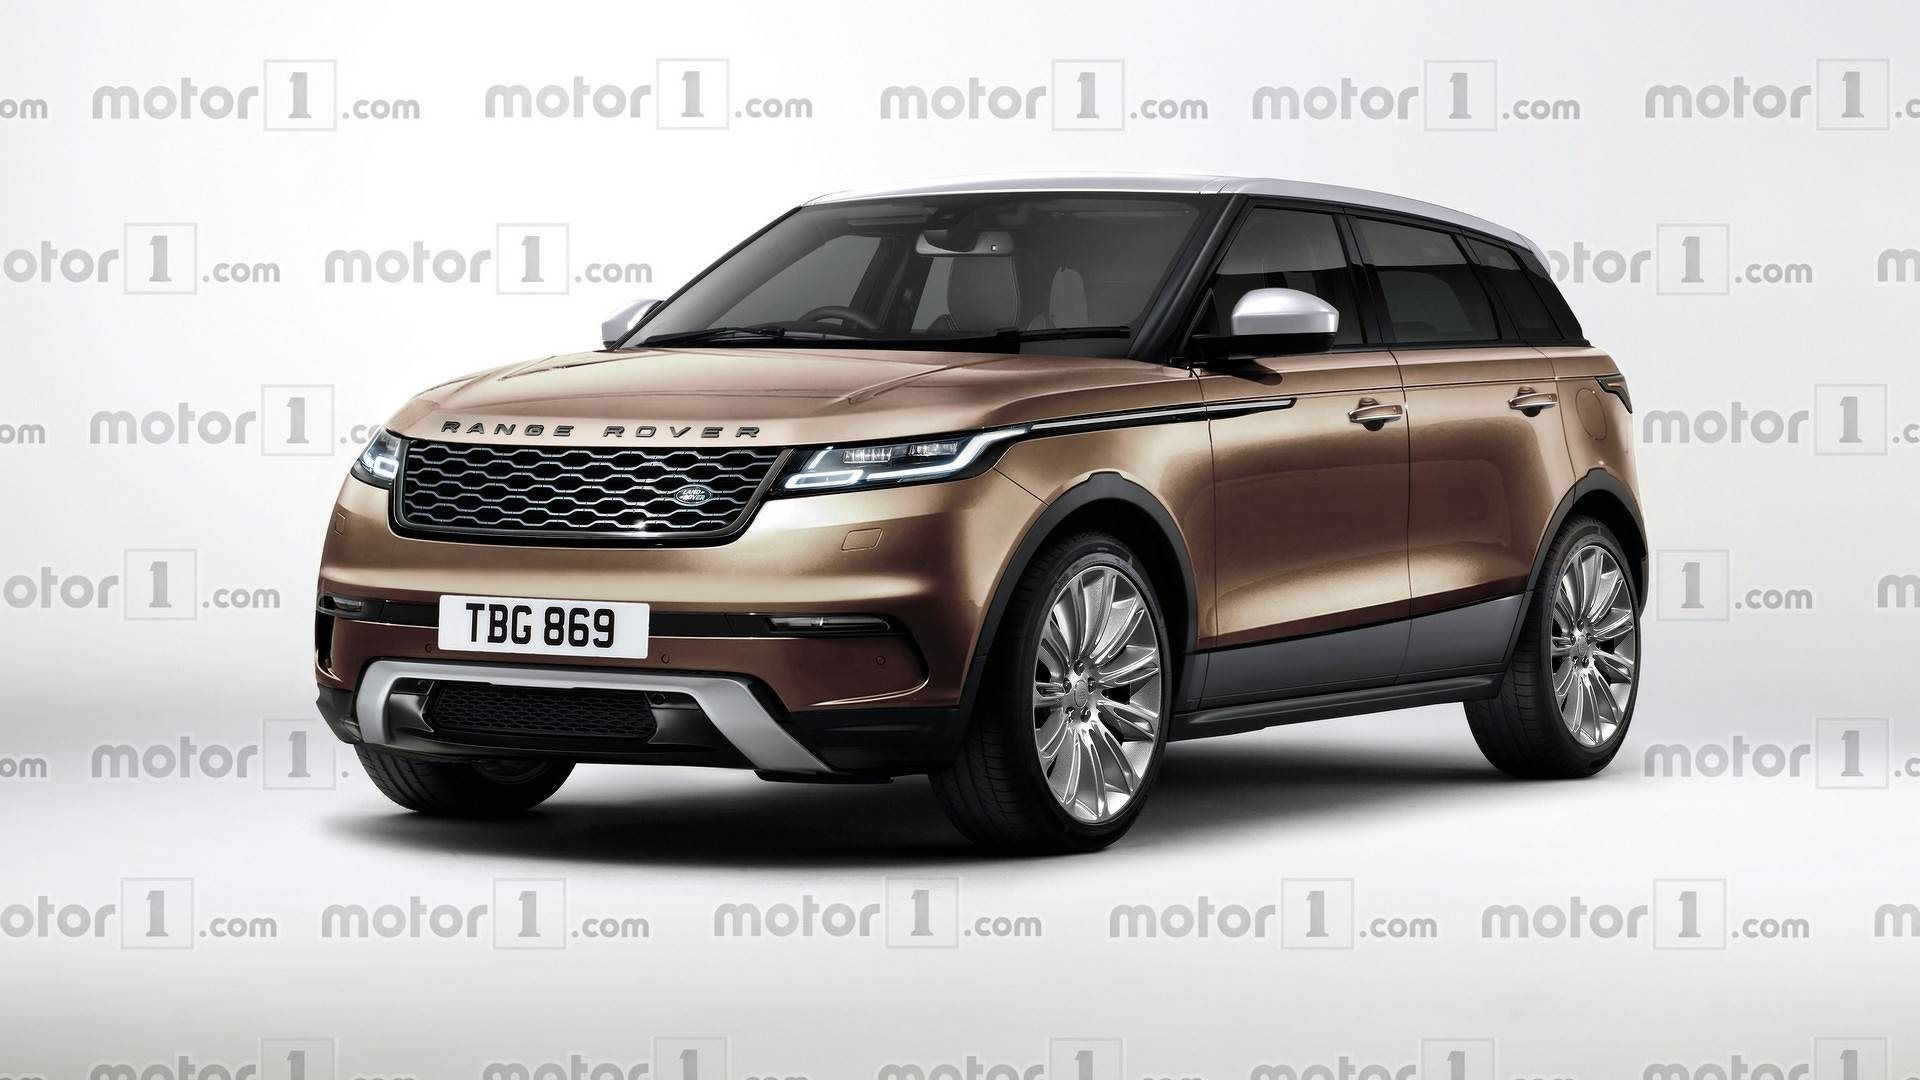 2021 Range Rover Sport Redesign And Concept Range Rover Evoque Range Rover Sport New Range Rover Evoque